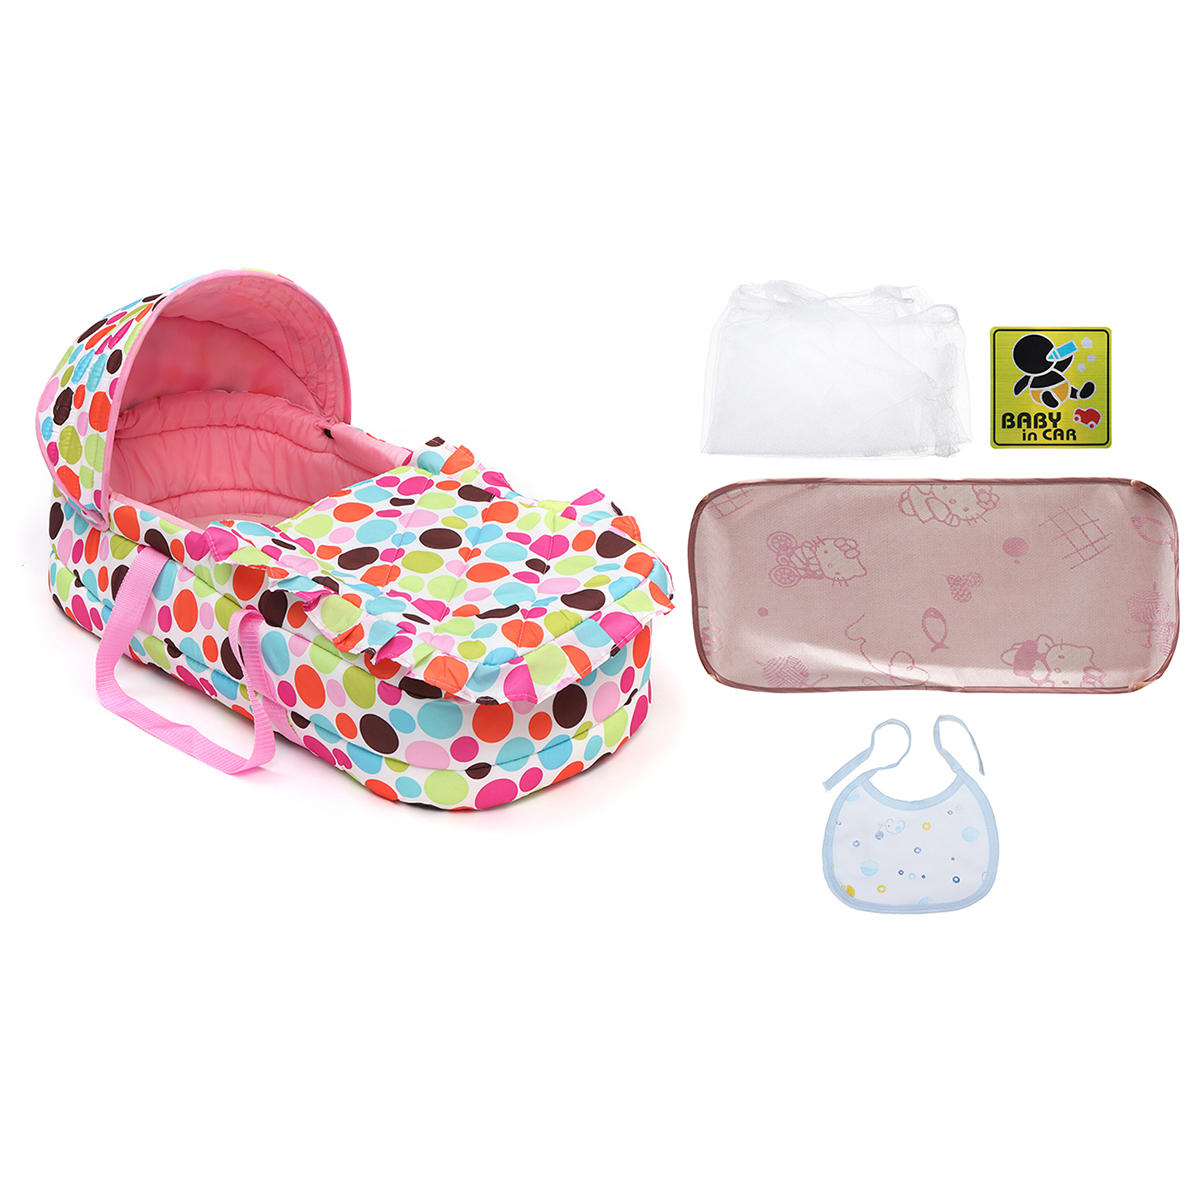 Portable Newborn Baby Infant Moses Basket Bed Baby Cradle Bassinet Travel Comfortable - 12